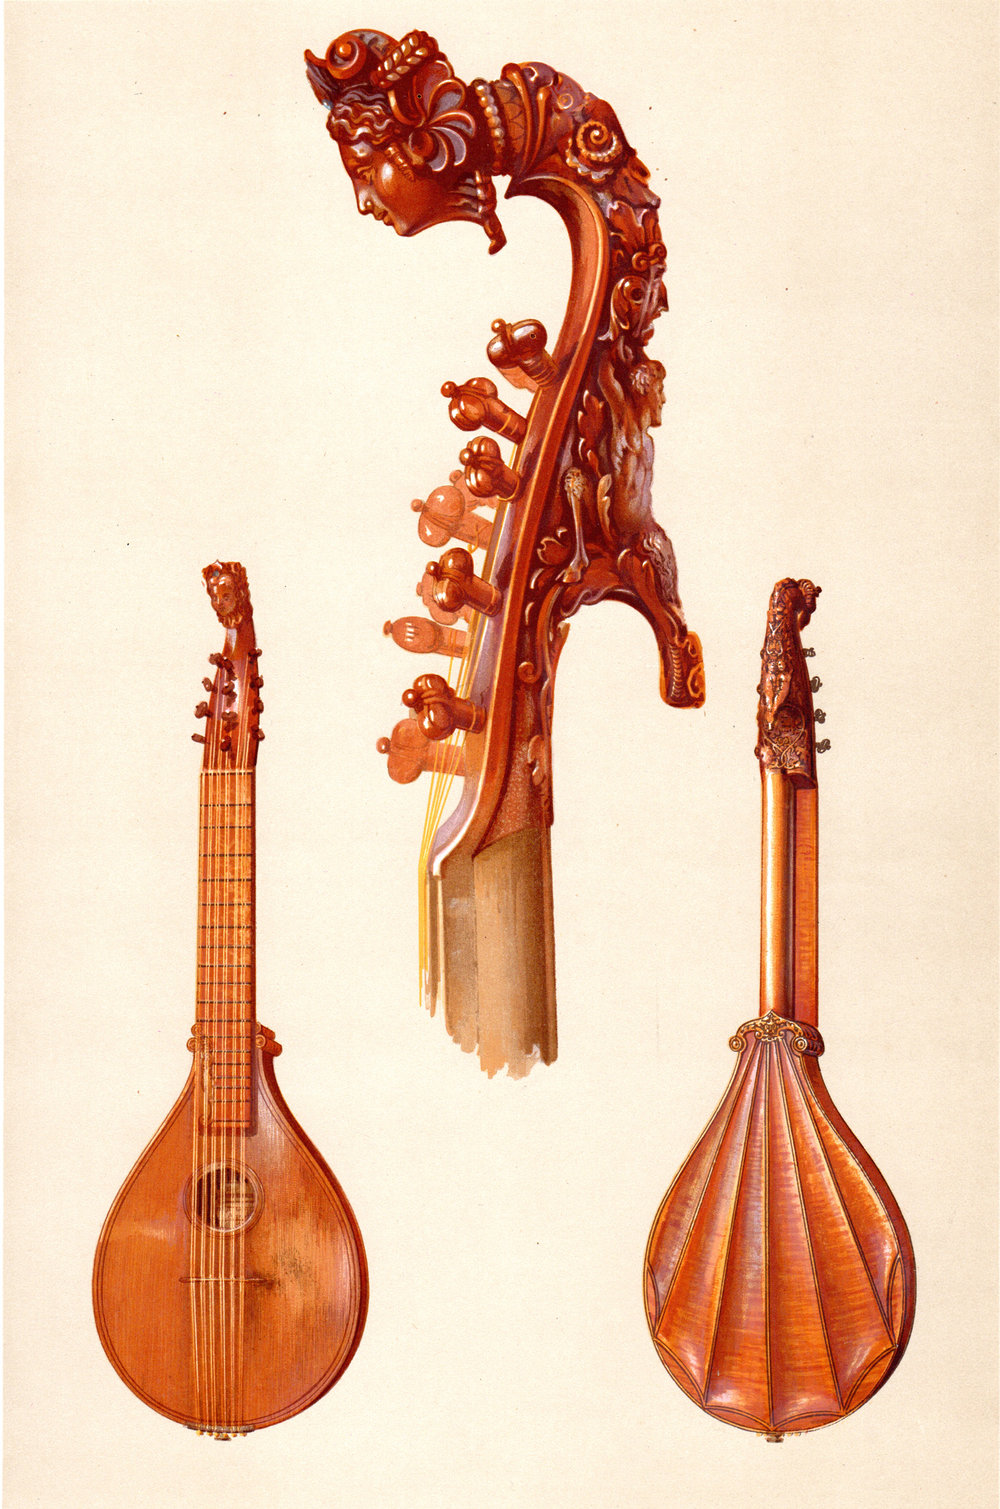 Musical Instruments Historic, Rare and Unique by A.J. Hipkins, illustrated by William Gibbs (1888)